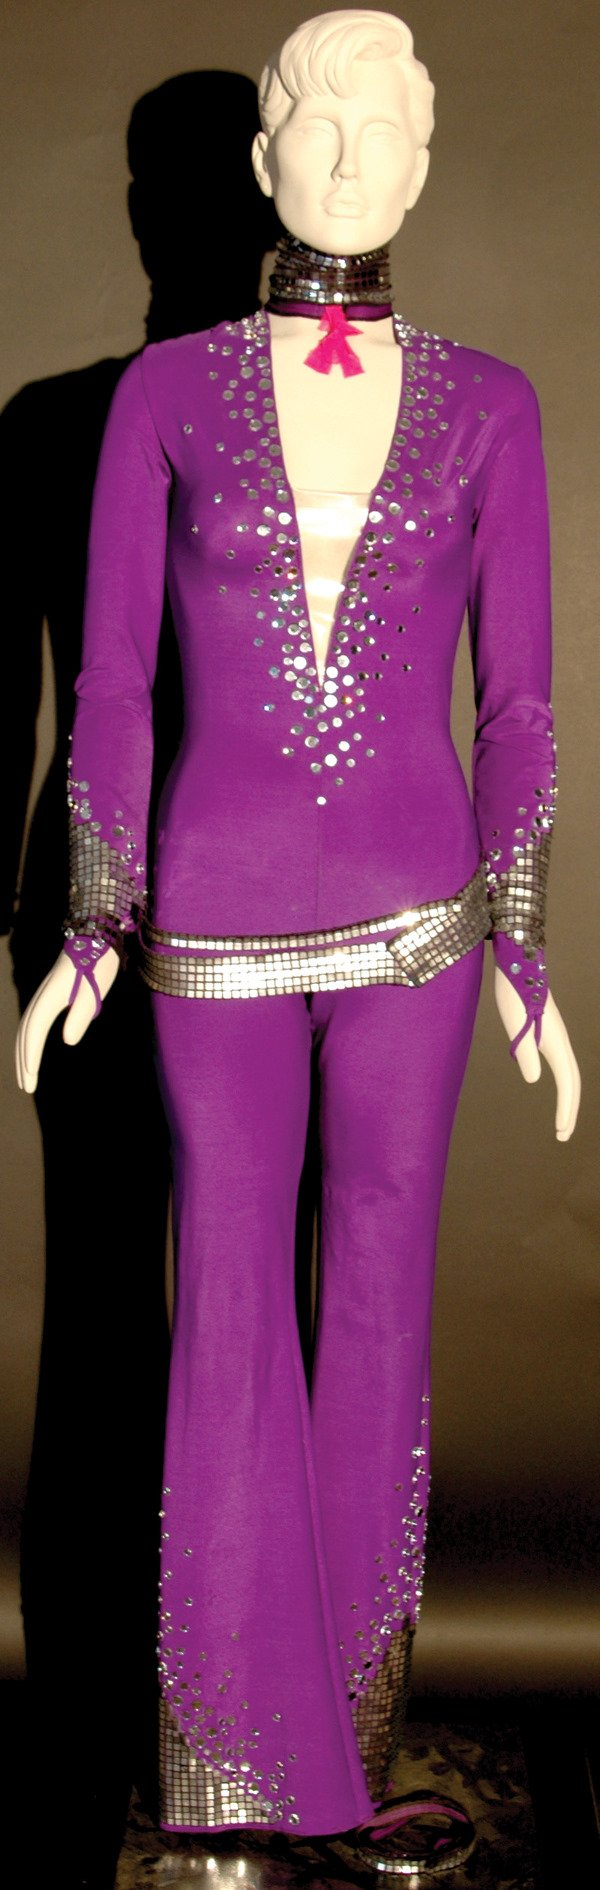 341: Britney Spears Stage Worn Concert Jumpsuit